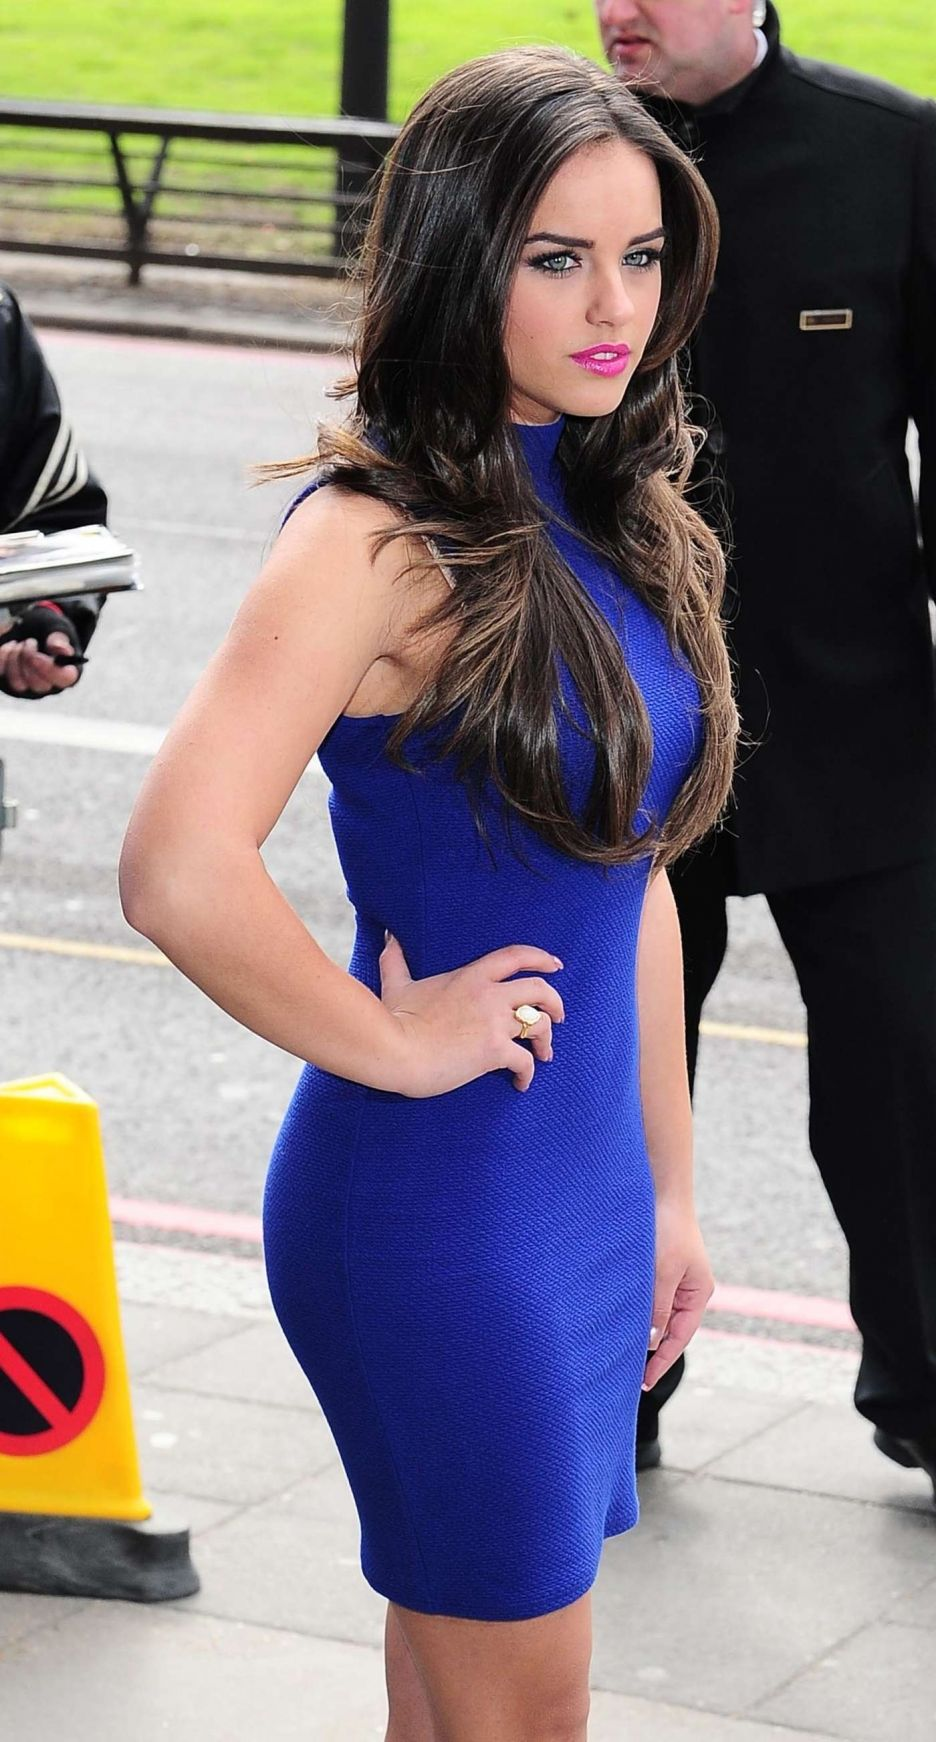 Georgia May Foote Hot in Blue Dress